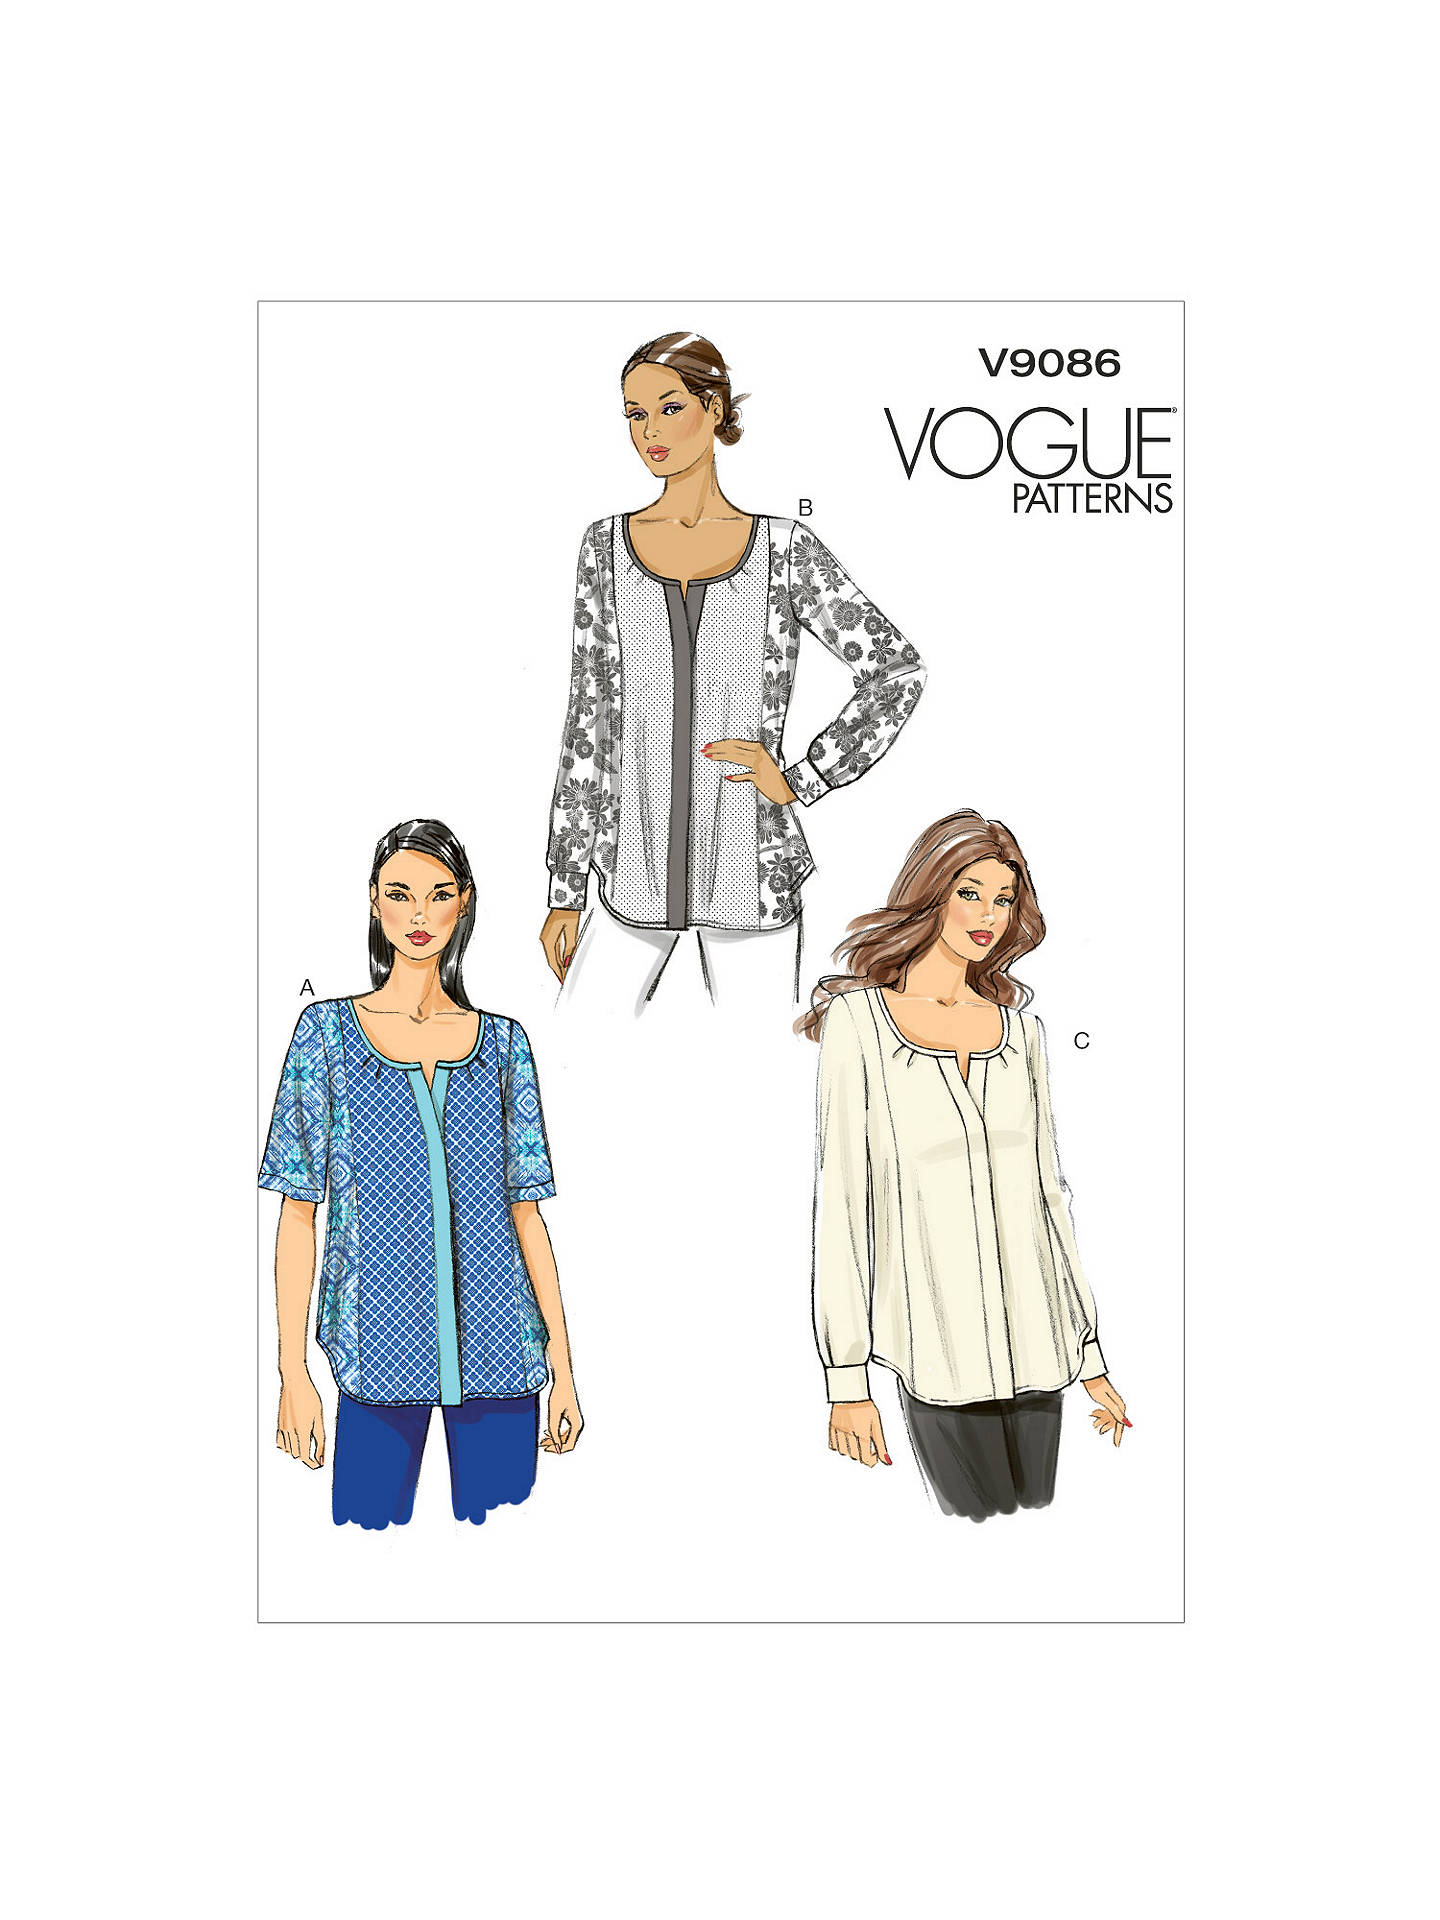 Vogue Very Easy Bias Neck Button Placket Blouse Sewing Pattern, 9086